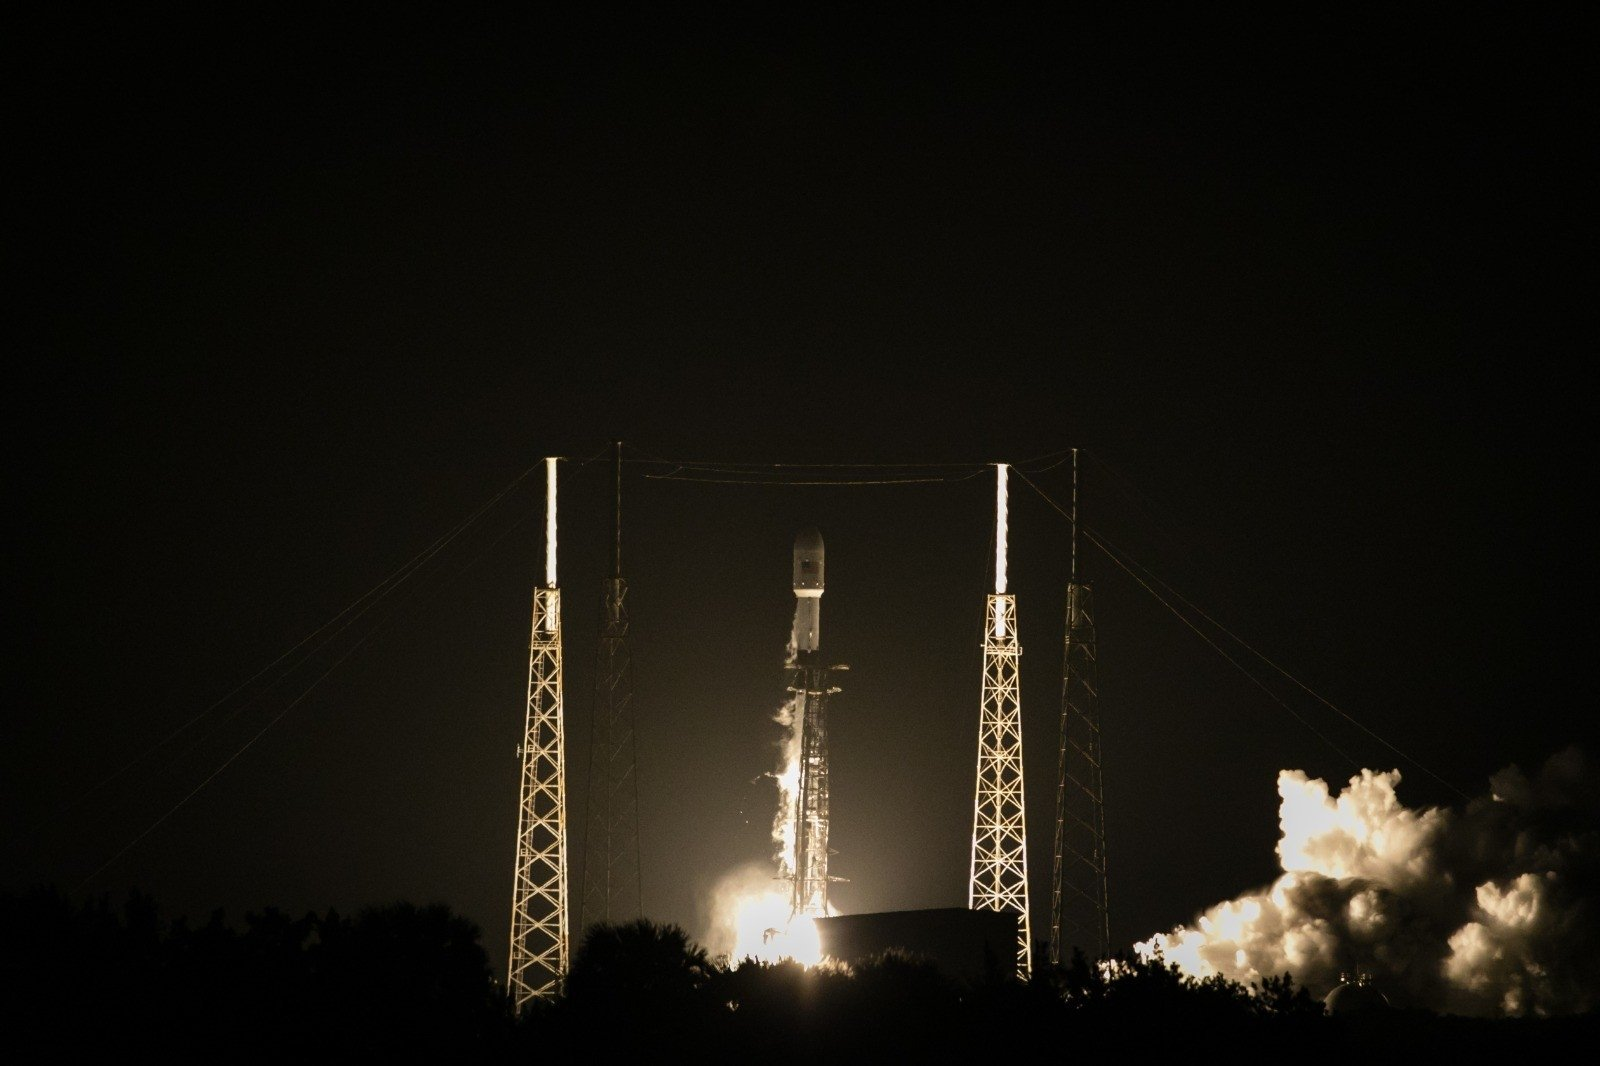 Turkey's new Türksat 5A satellite, carried by a SpaceX Falcon 9 rocket, launches from Cape Canaveral Space Force Station, in Cape Canaveral, Florida, U.S., Jan. 7, 2020. (IHA Photo)